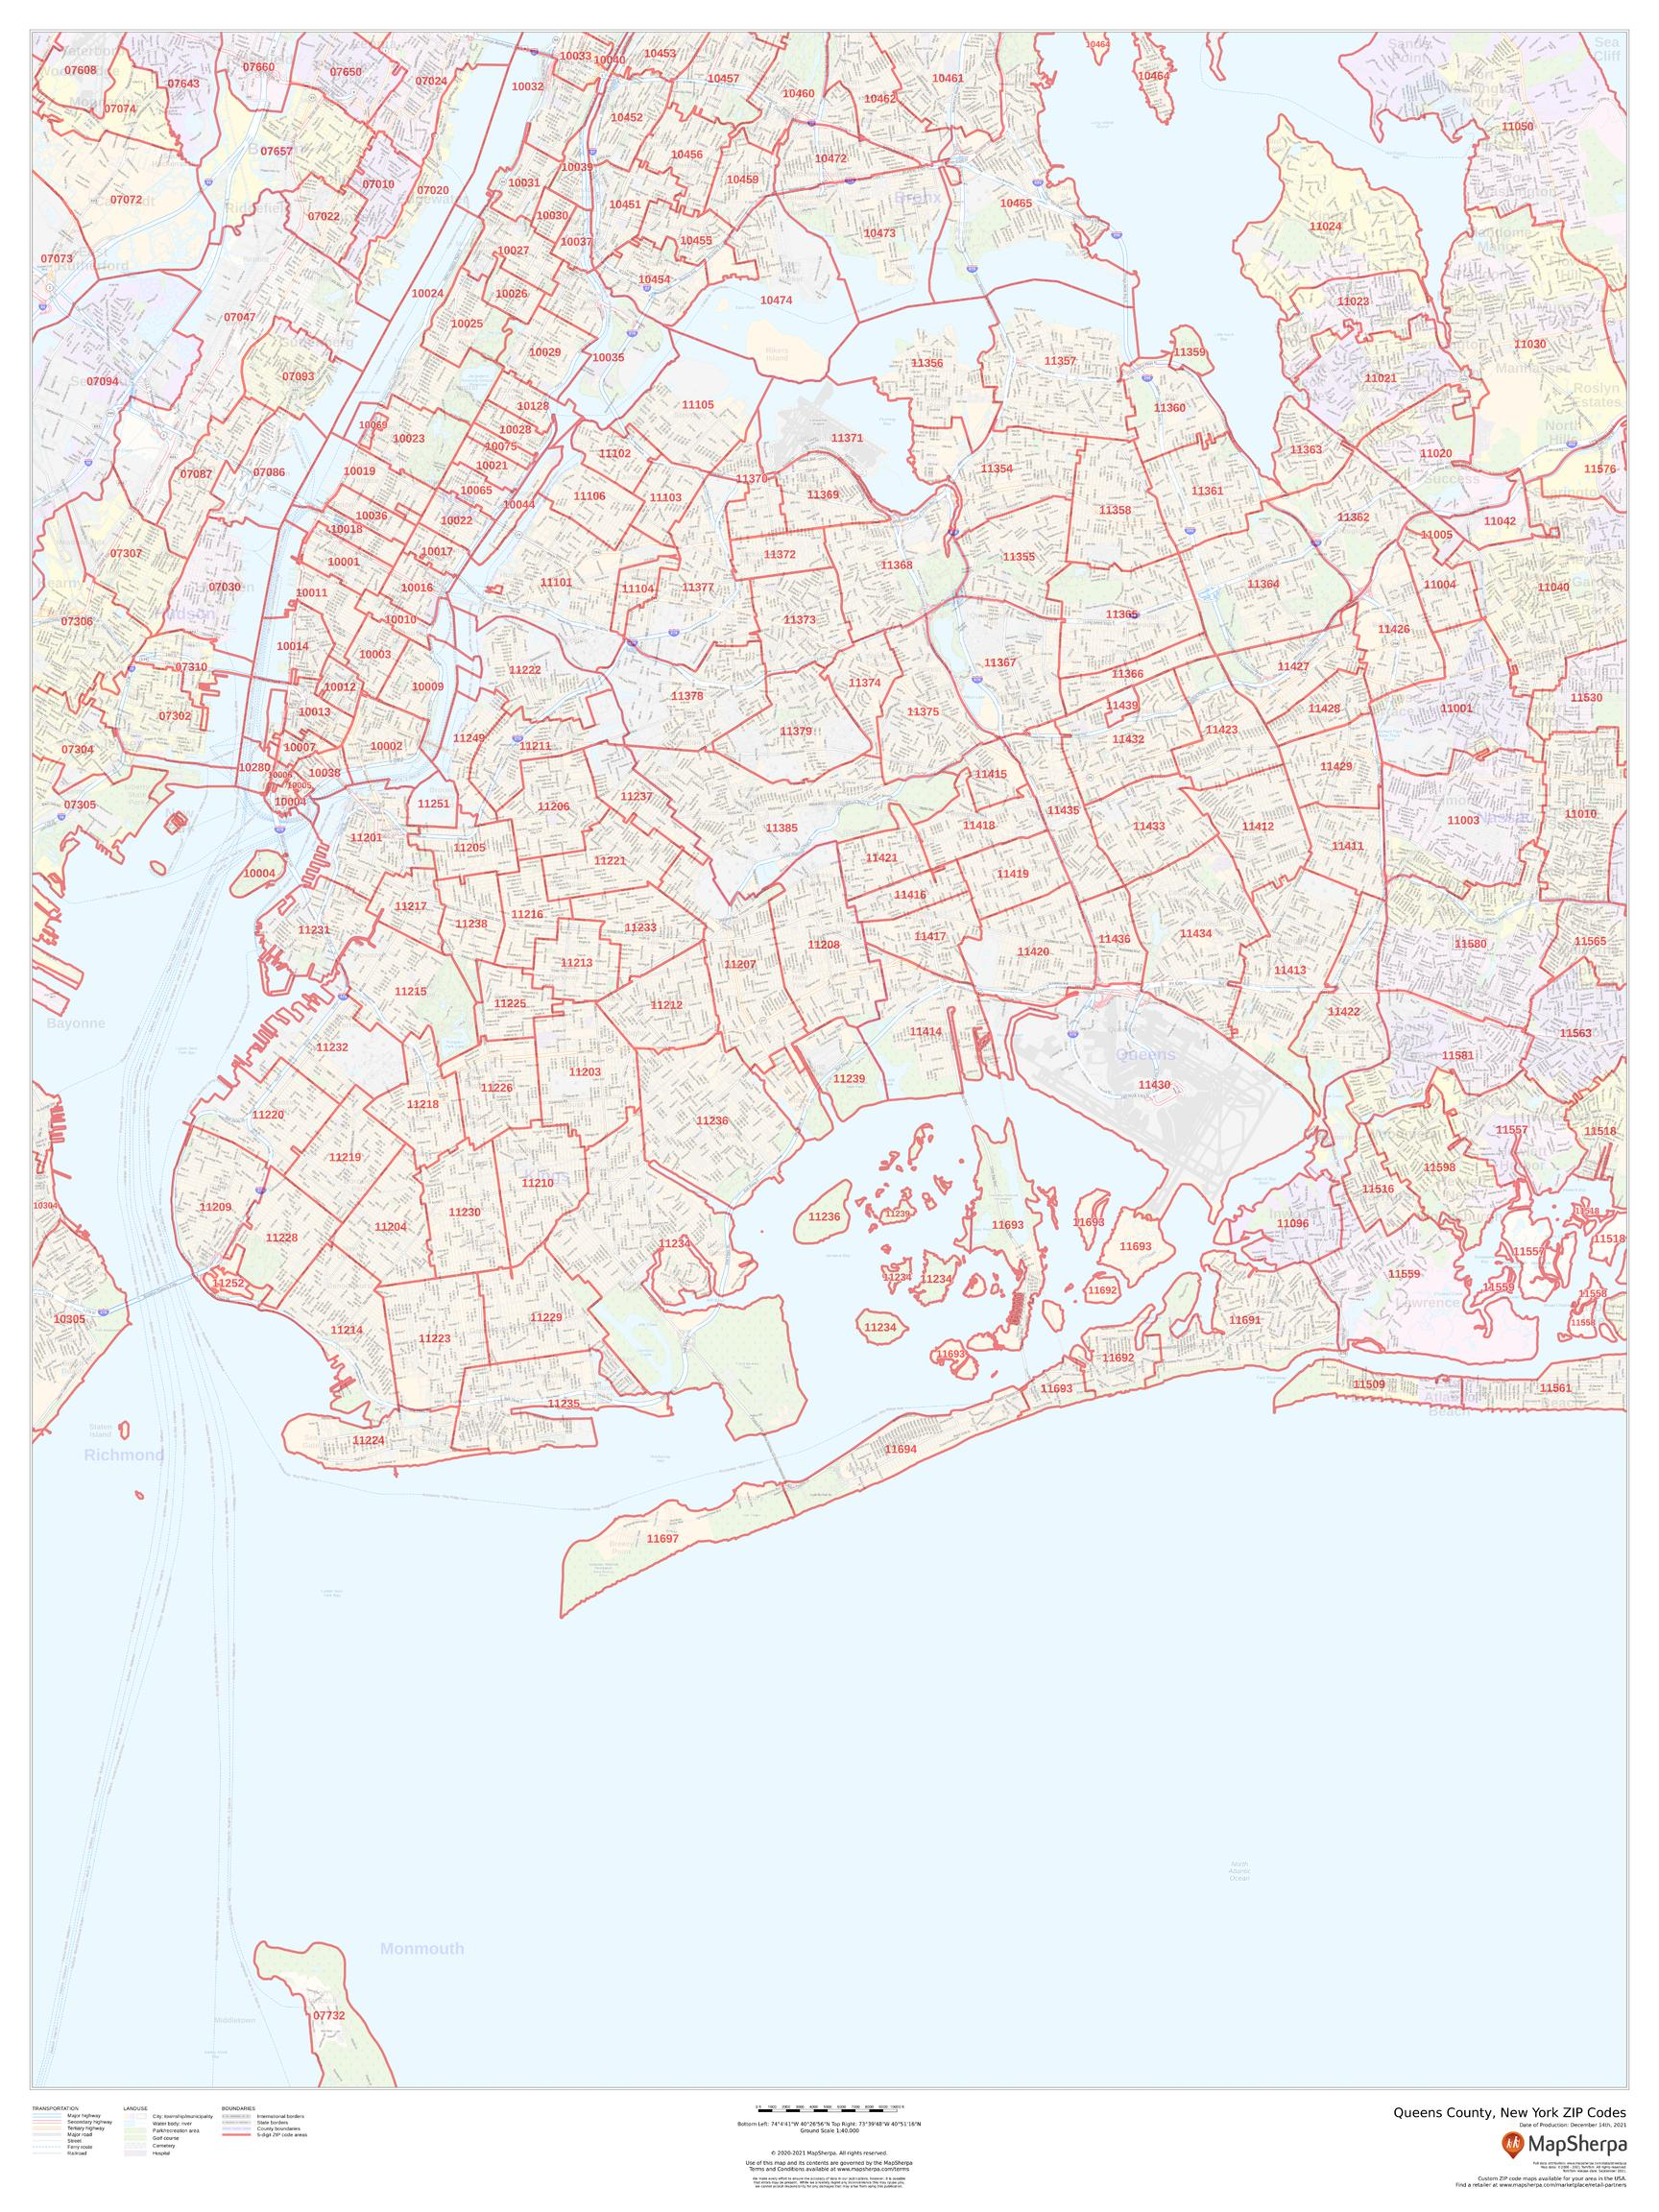 Queens County New York Zip Codes